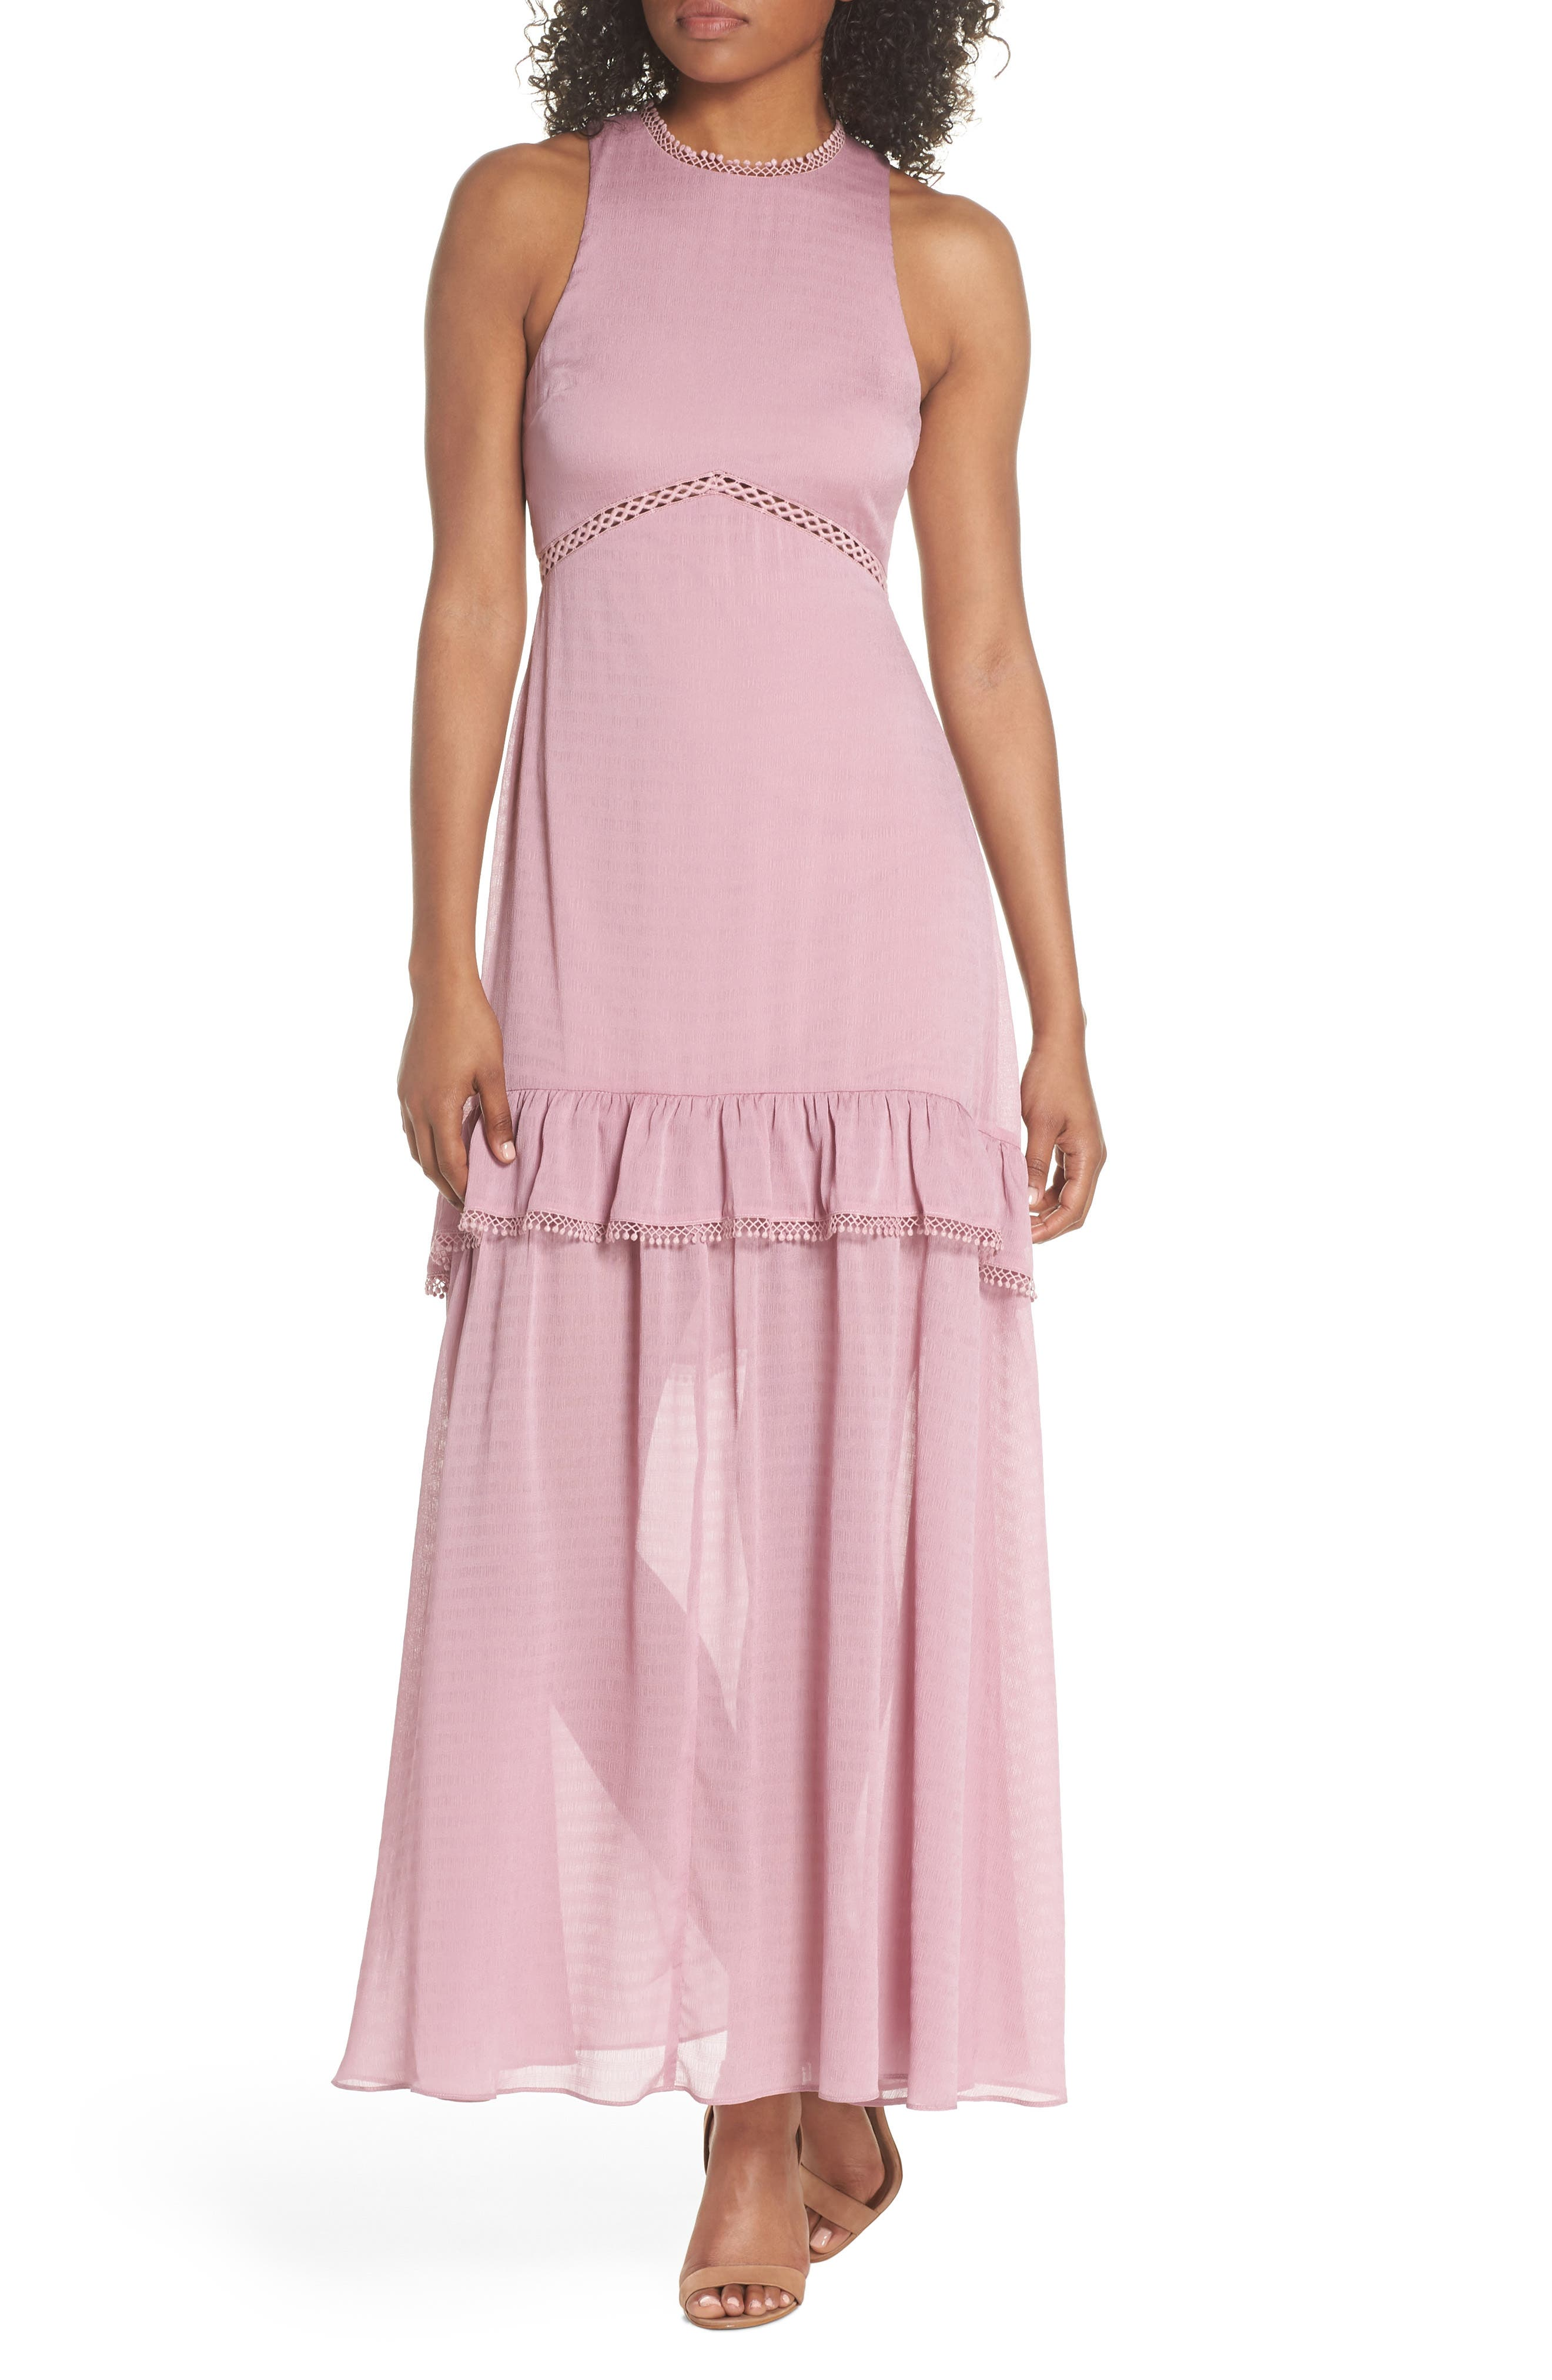 Sleeveless Ruffle Maxi Dress,                             Main thumbnail 1, color,                             525